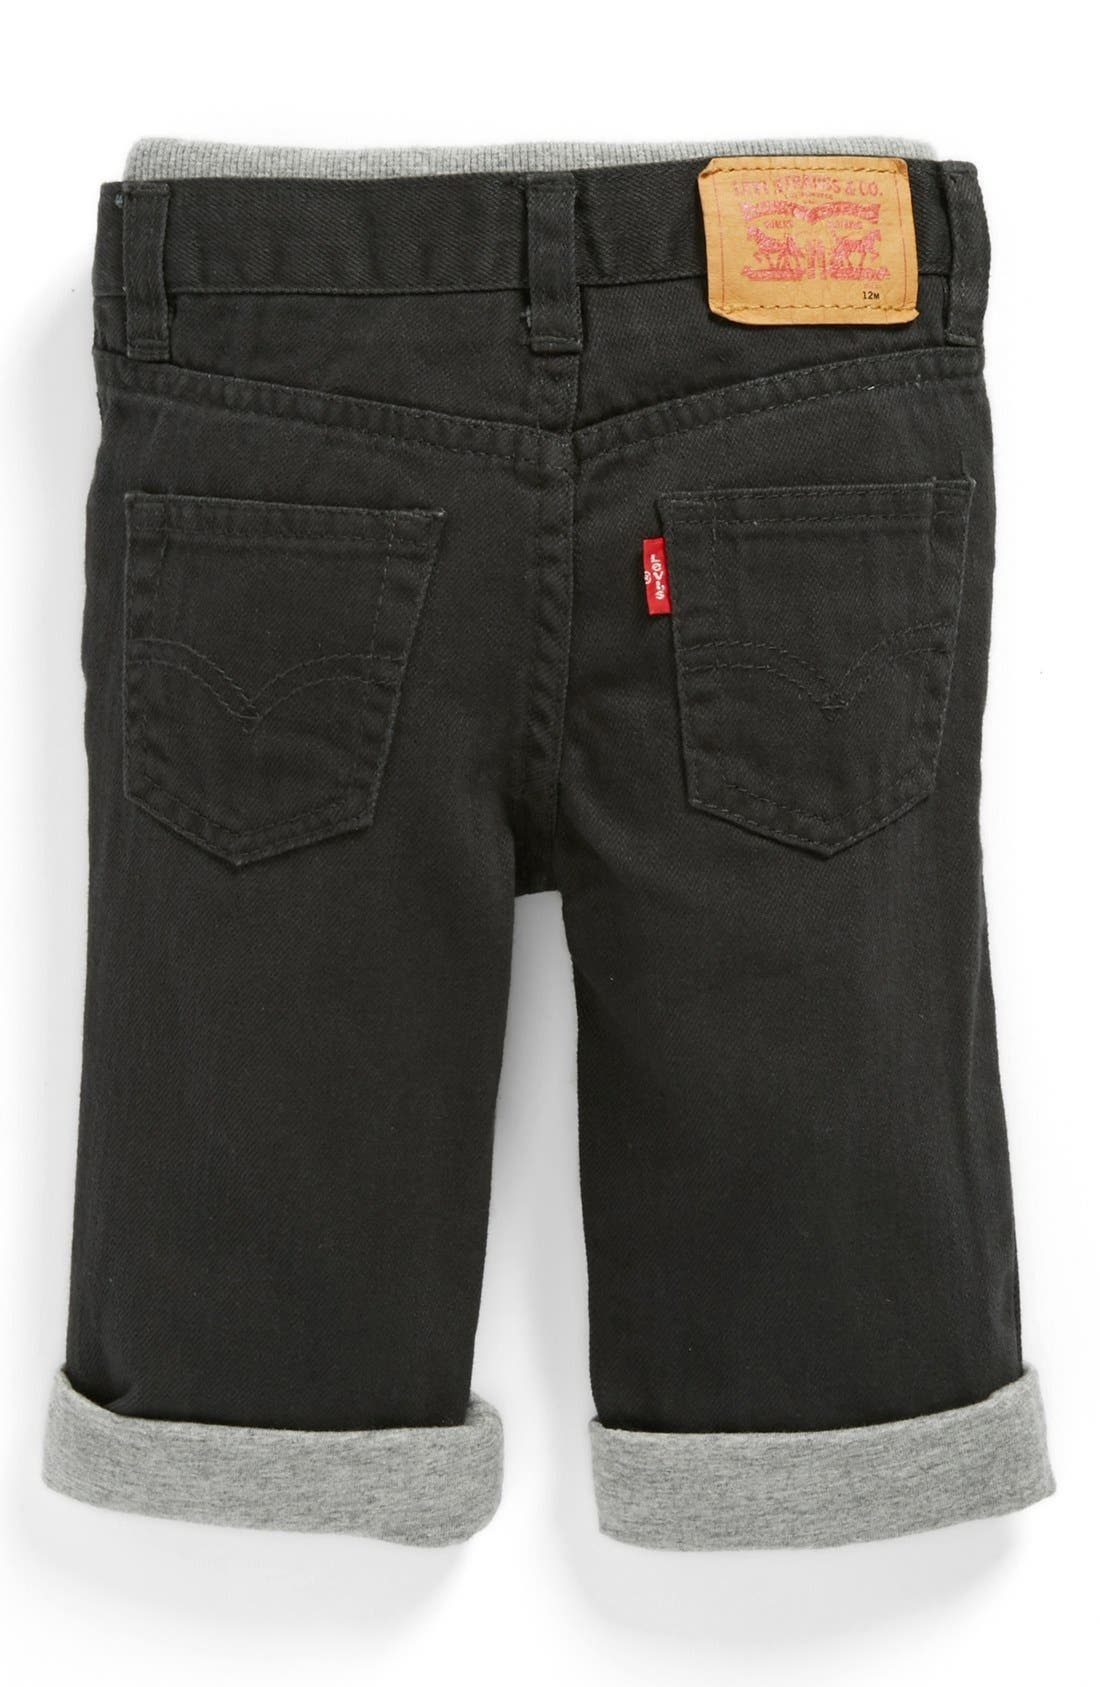 Alternate Image 1 Selected - Levi's® '514™' Straight Leg Jeans (Baby)